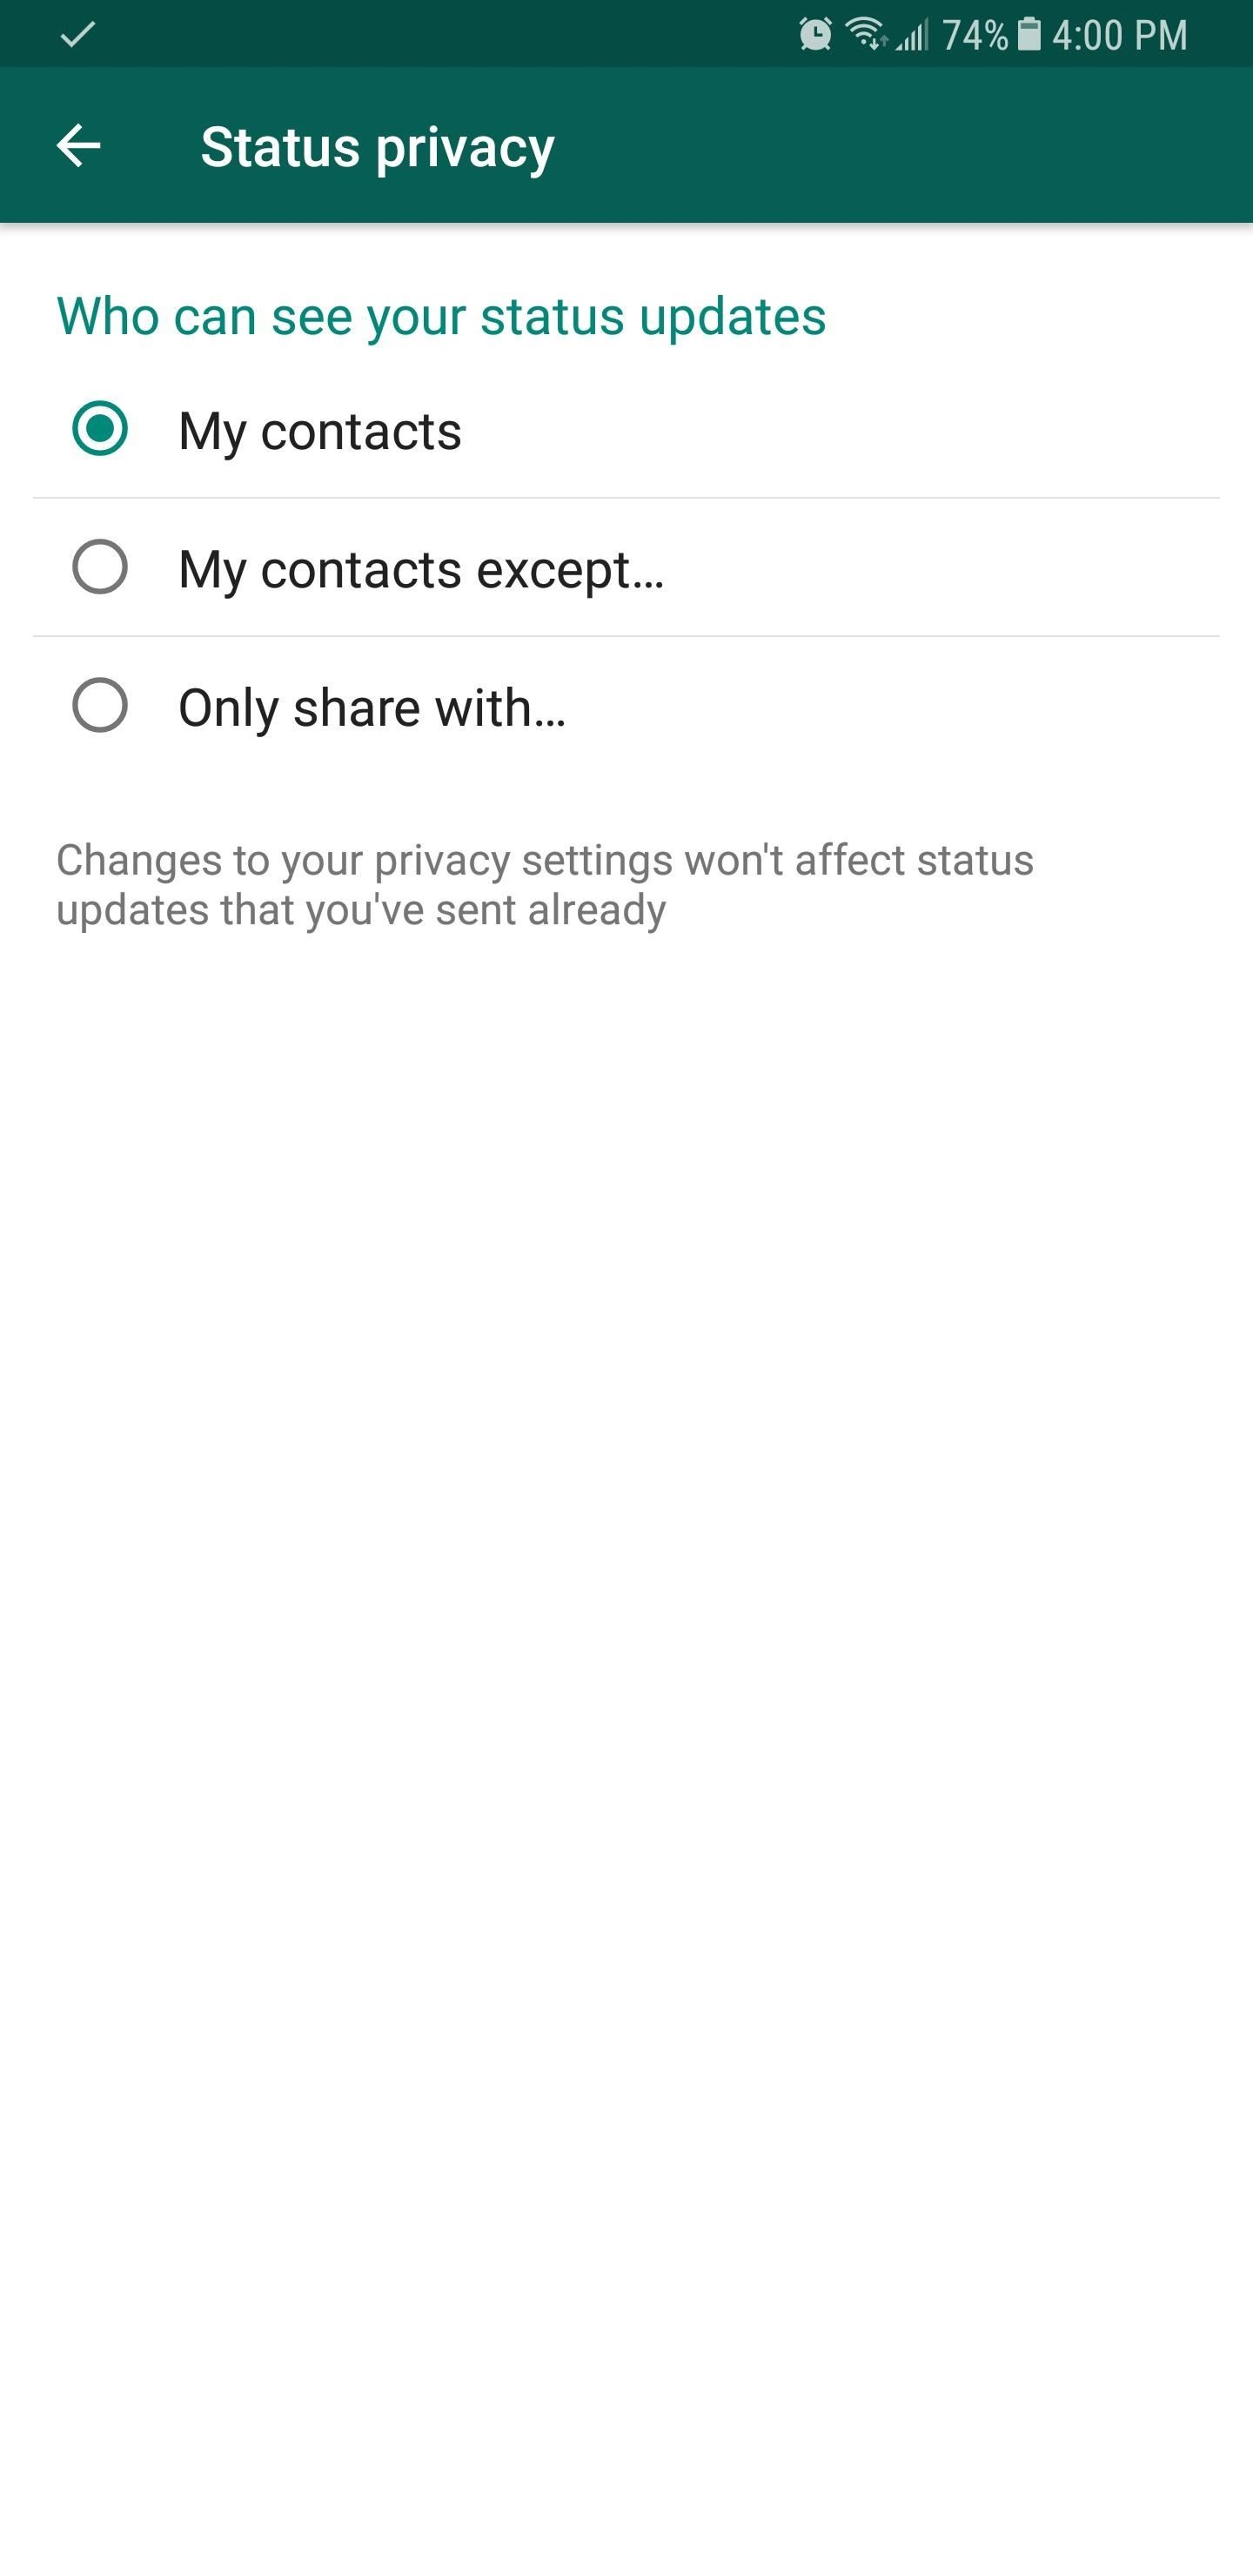 WhatsApp 101: How to Share Status Updates on iPhone or Android